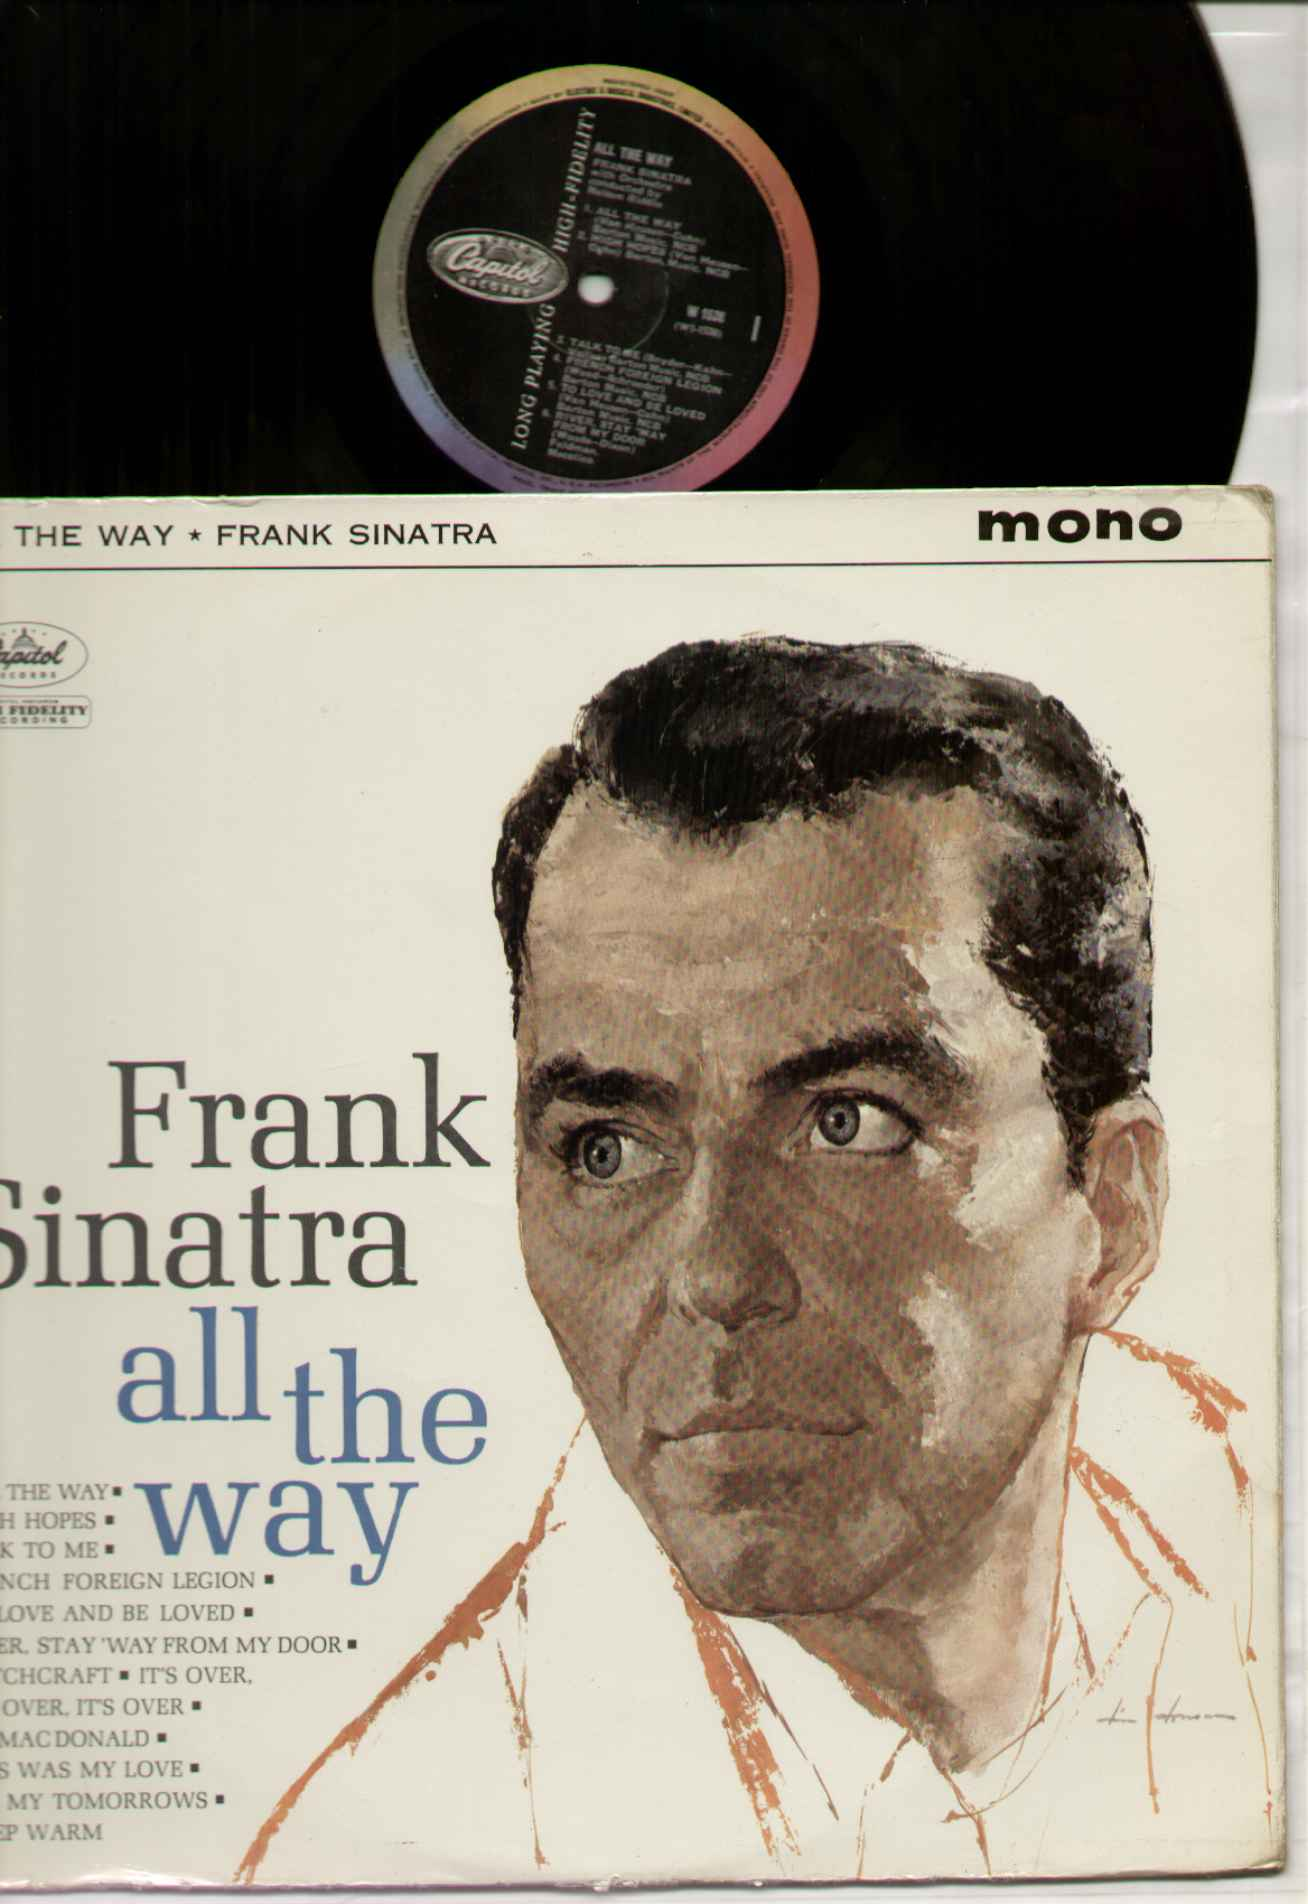 All The Way - Frank Sinatra